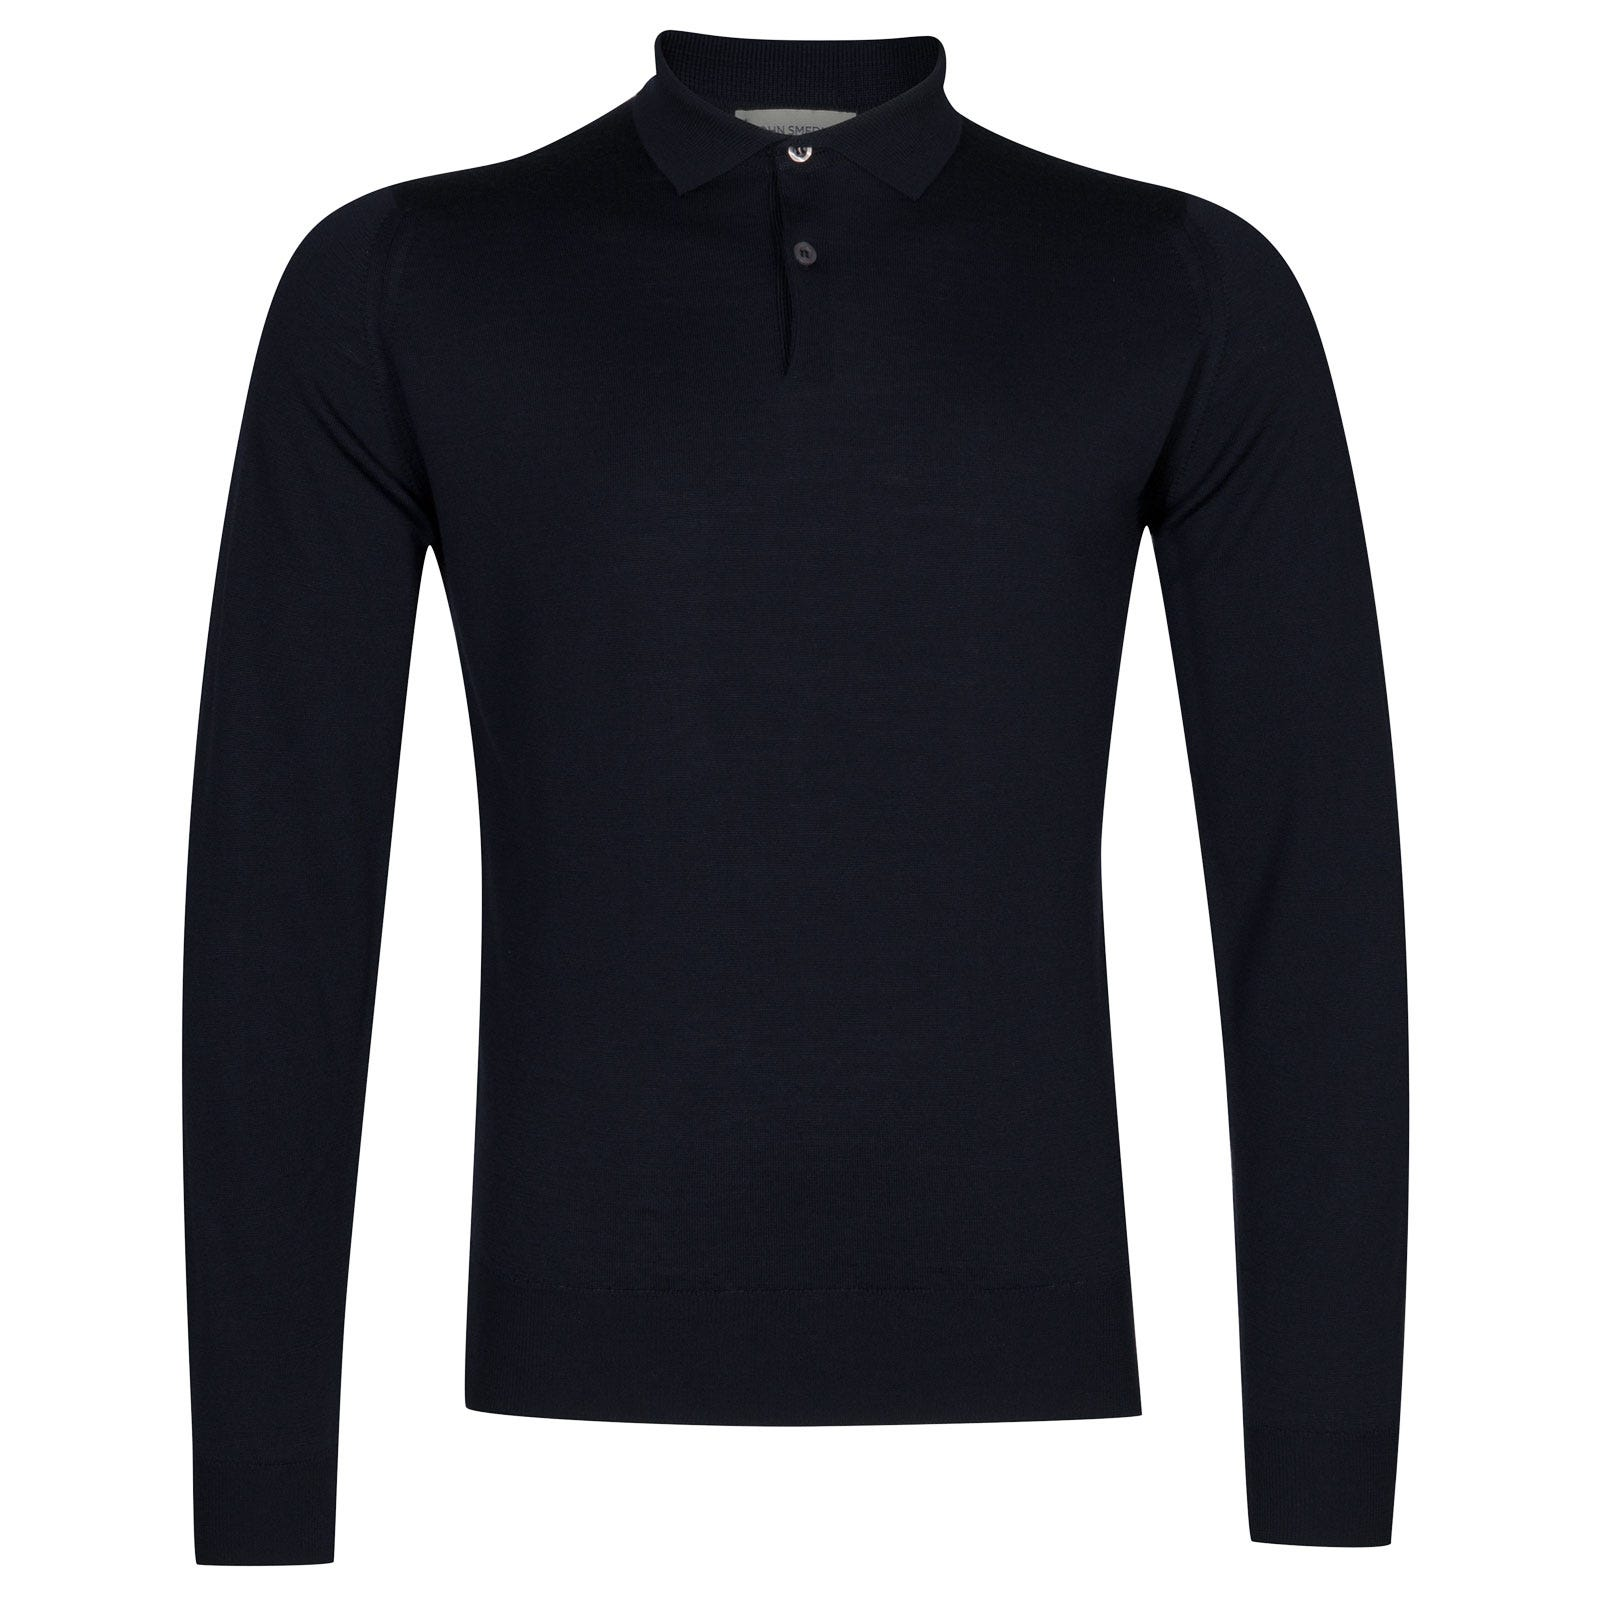 John Smedley garda Merino Wool Shirt in Midnight-M